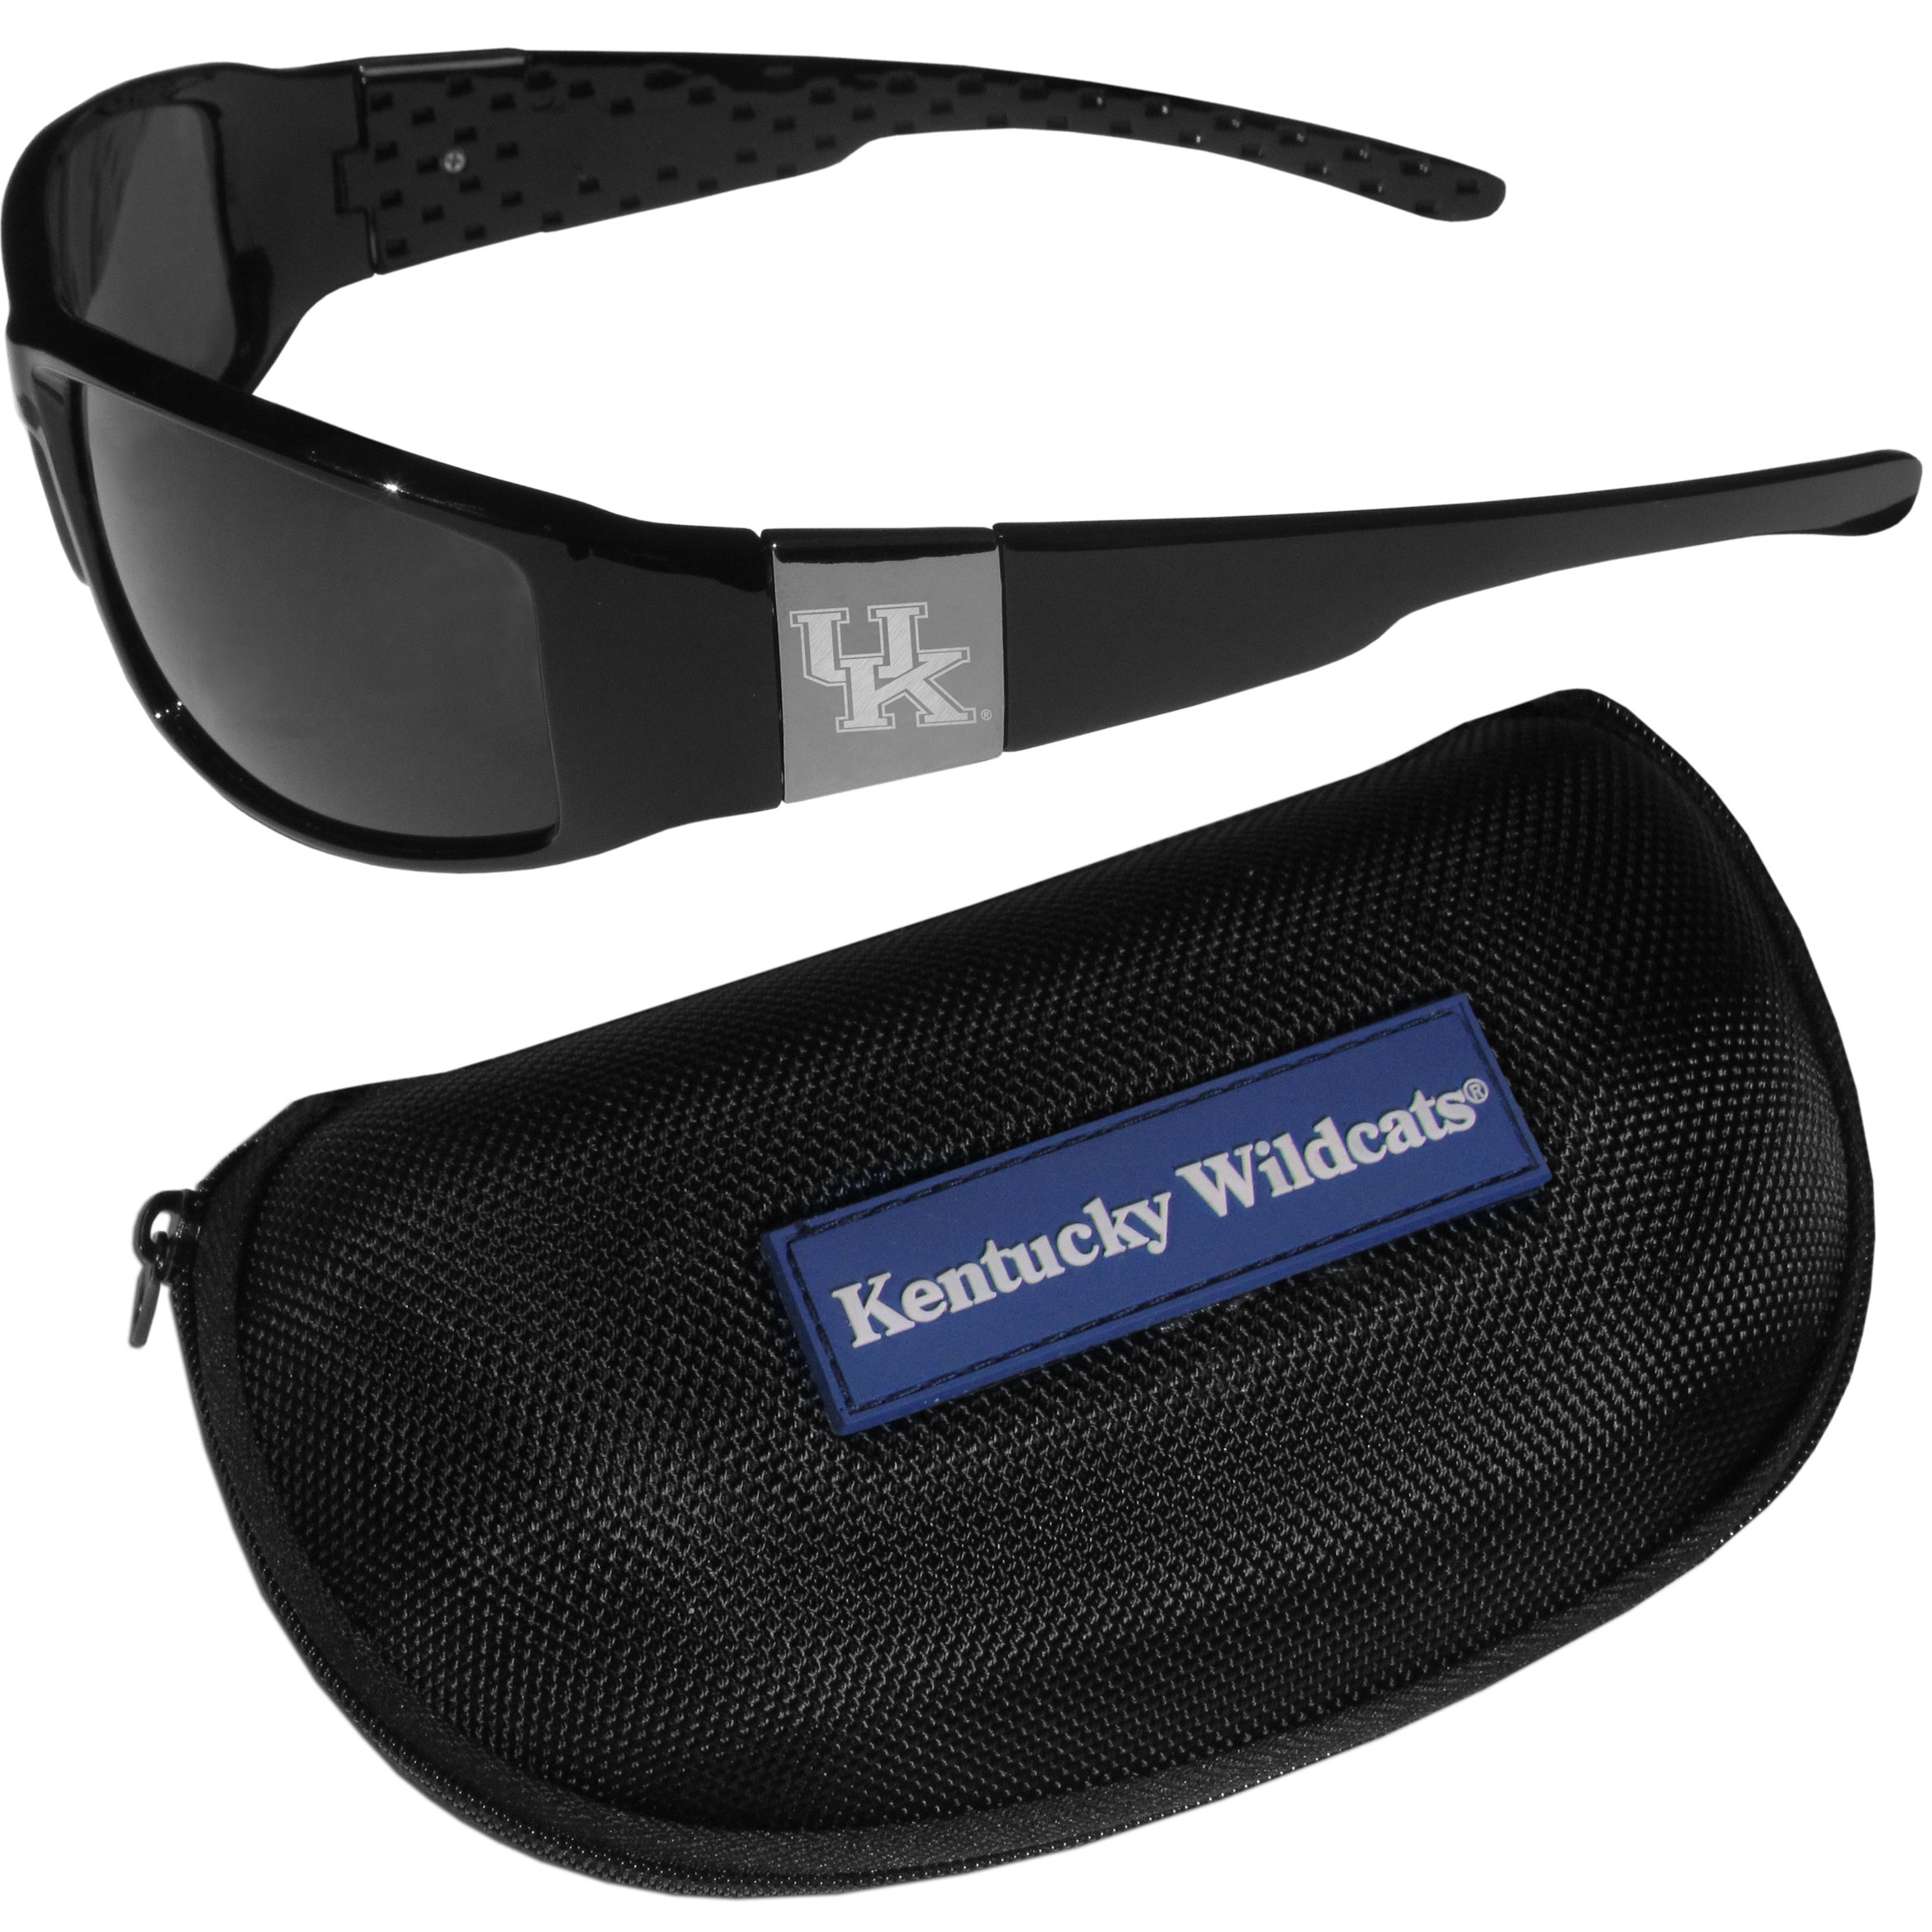 Kentucky Wildcats Chrome Wrap Sunglasses and Zippered Carrying Case - These designer inspired frames have a sleek look in all black with high-polish chrome Kentucky Wildcats shields on each arm with an etched logo. The shades are perfect any outdoor activity like; golfing, driving, hiking, fishing or cheering on the team at a tailgating event or an at home game day BBQ with a lens rating of 100% UVA/UVB for maximum UV protection. The high-quality frames are as durable as they are fashionable and with their classic look they are perfect fan accessory that can be worn everyday for every occasion. The shades come with a zippered hard shell case to keep your sunglasses safe.